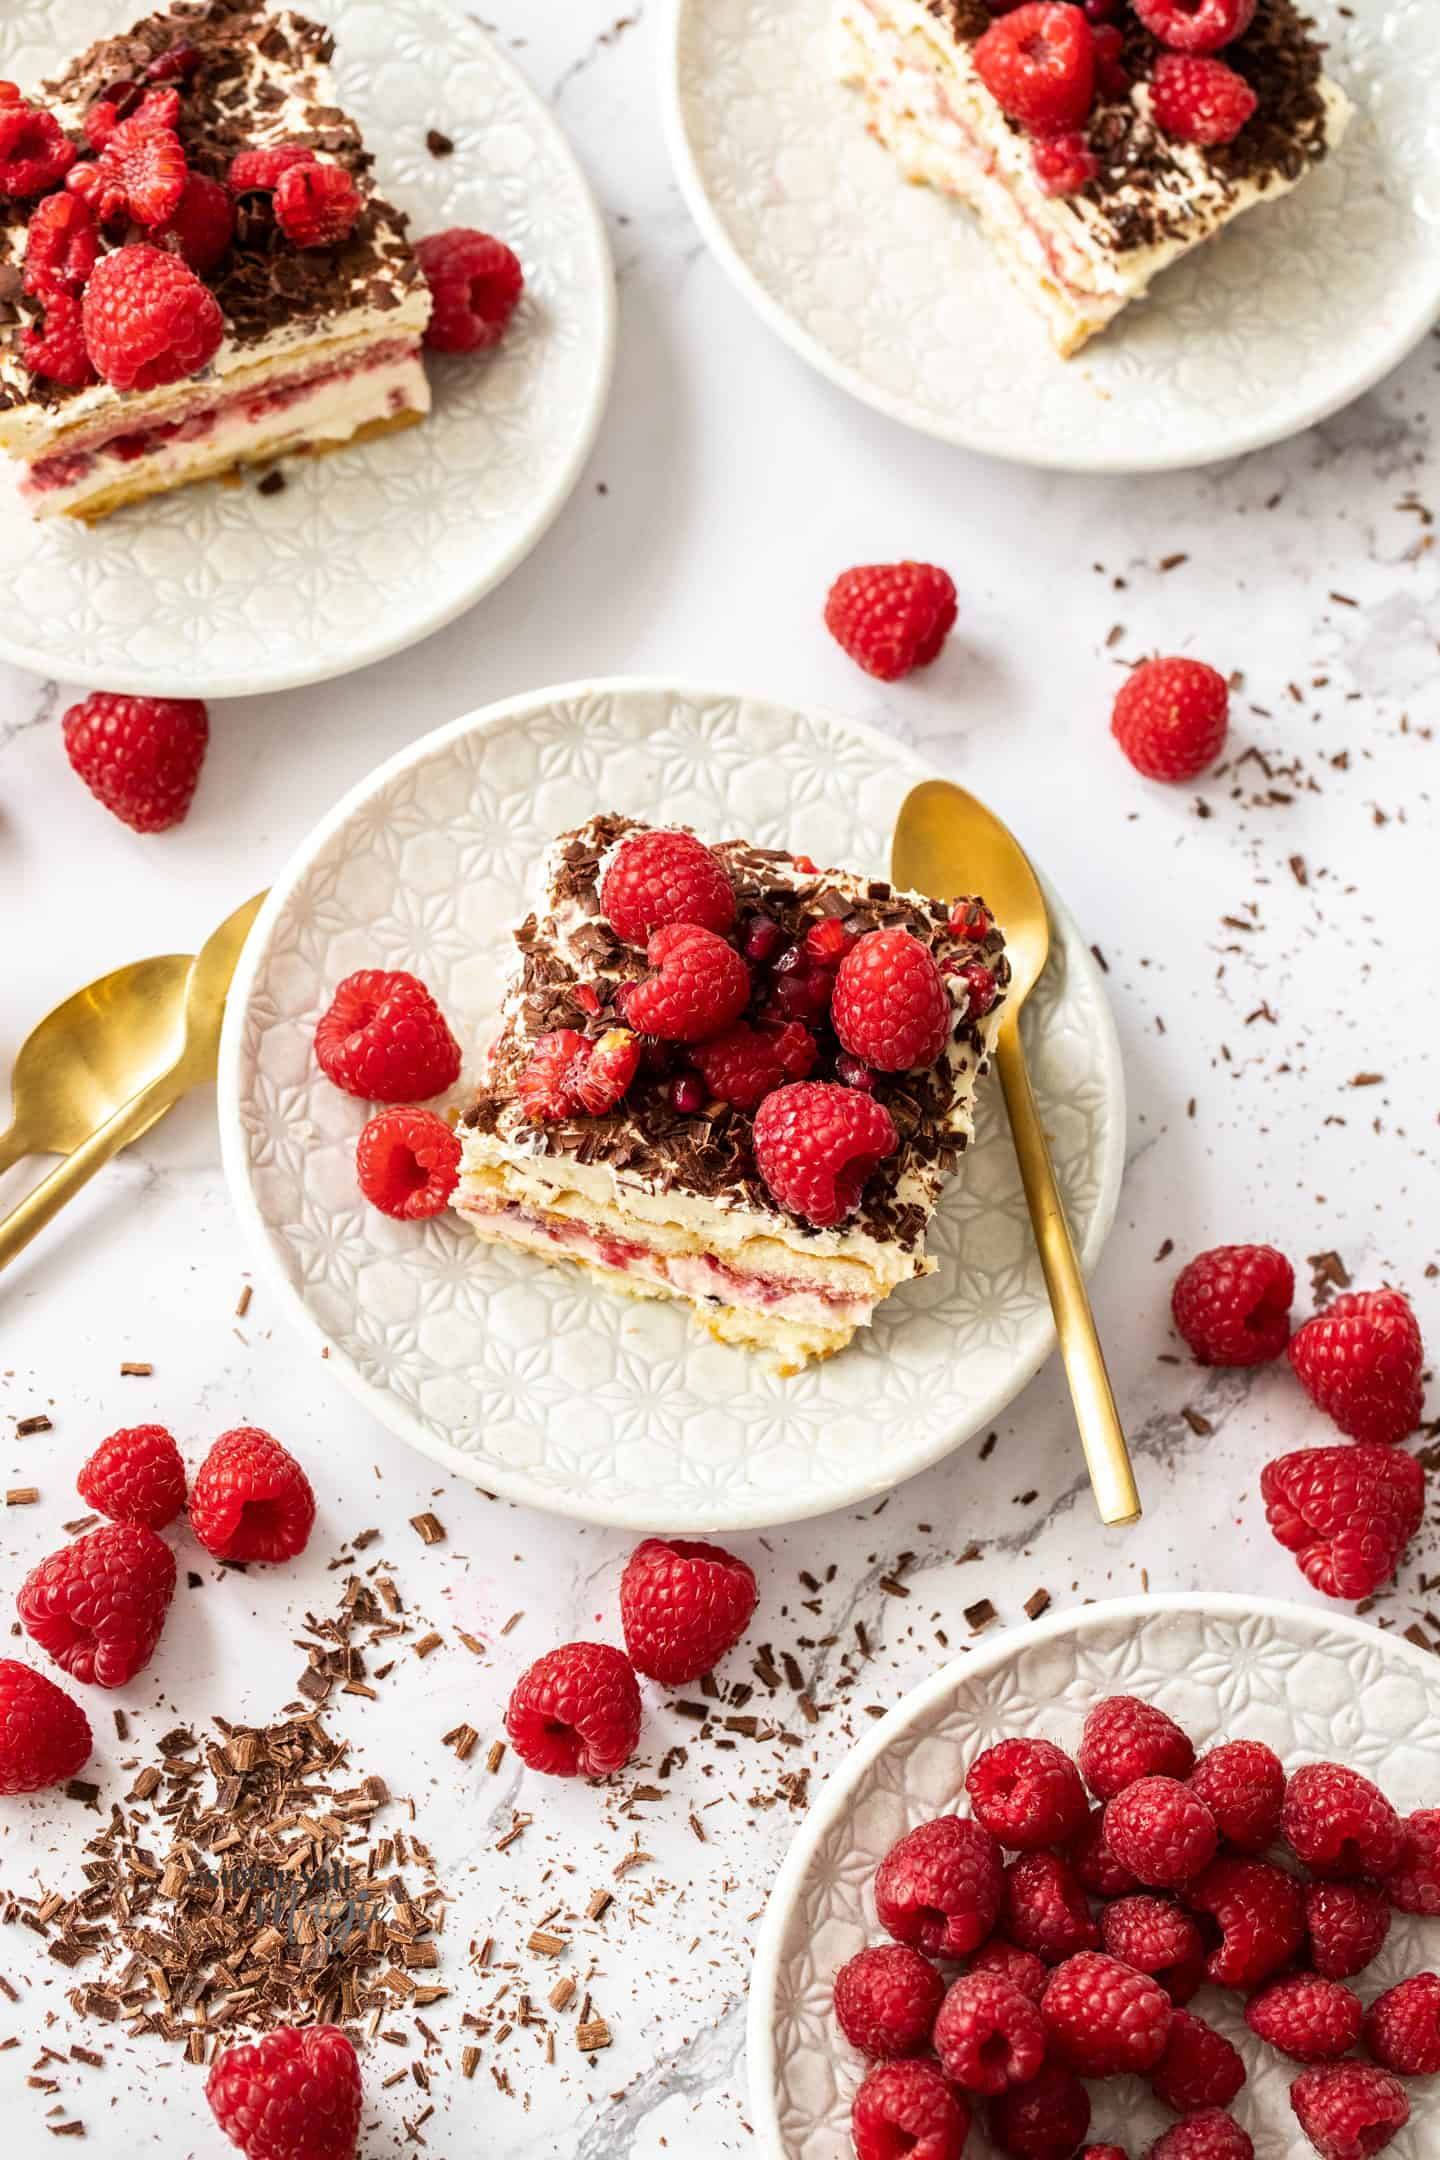 Top down view of 4 small plates of raspberry tiramisu surrounded by raspberries.